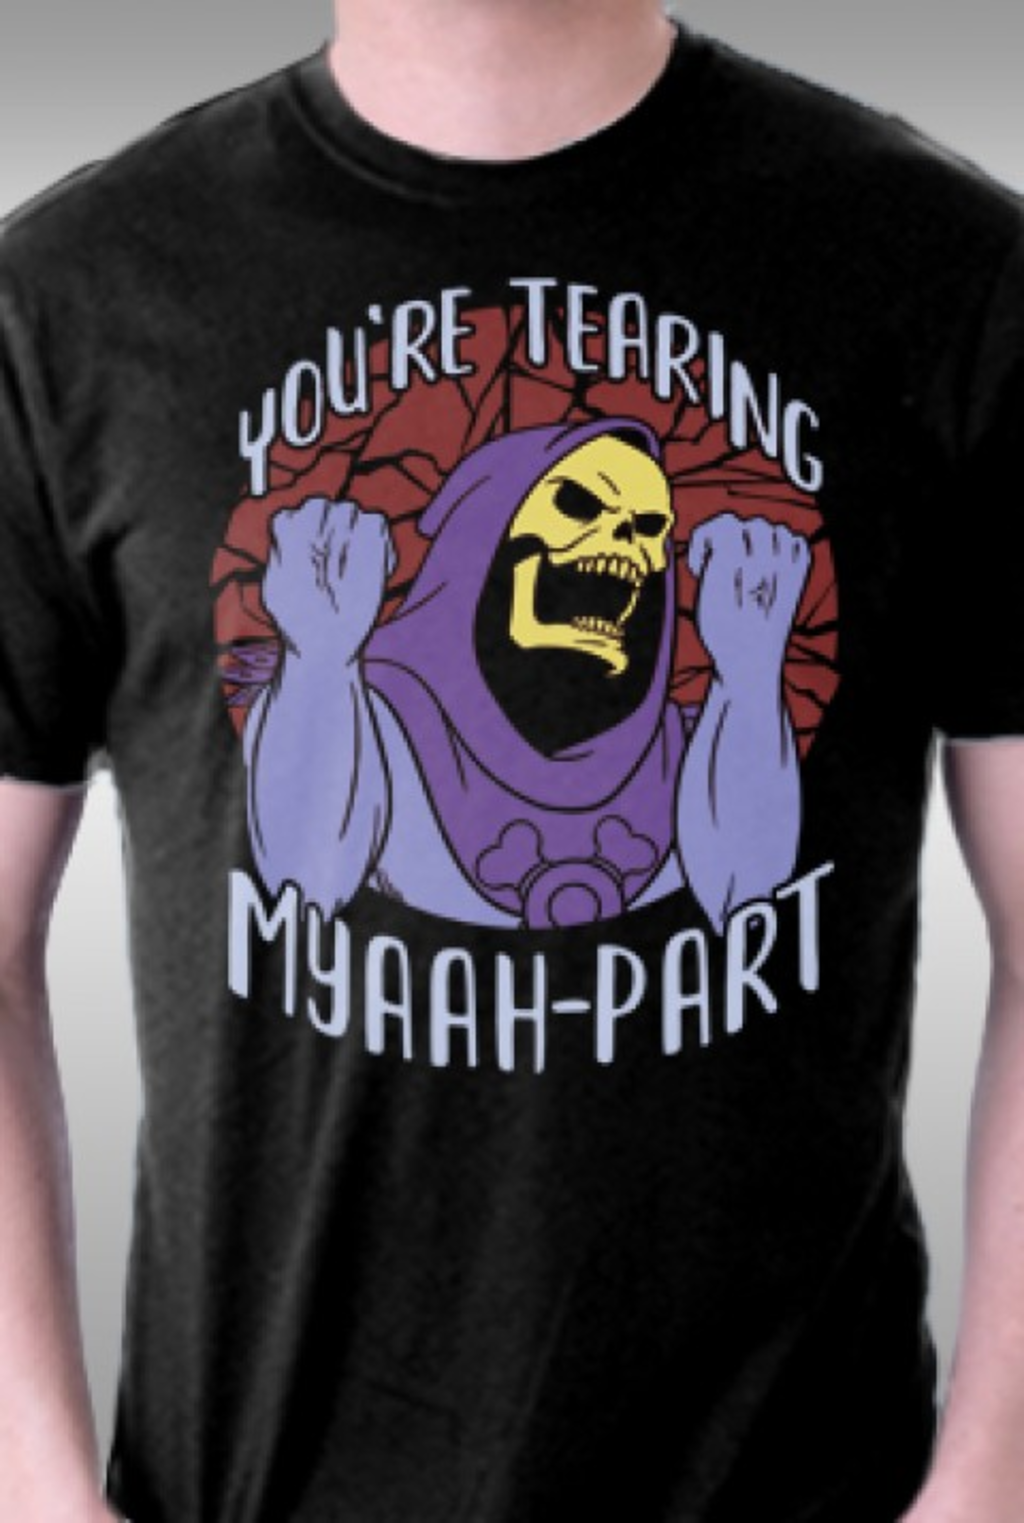 TeeFury: Tearing Myaaah-Part